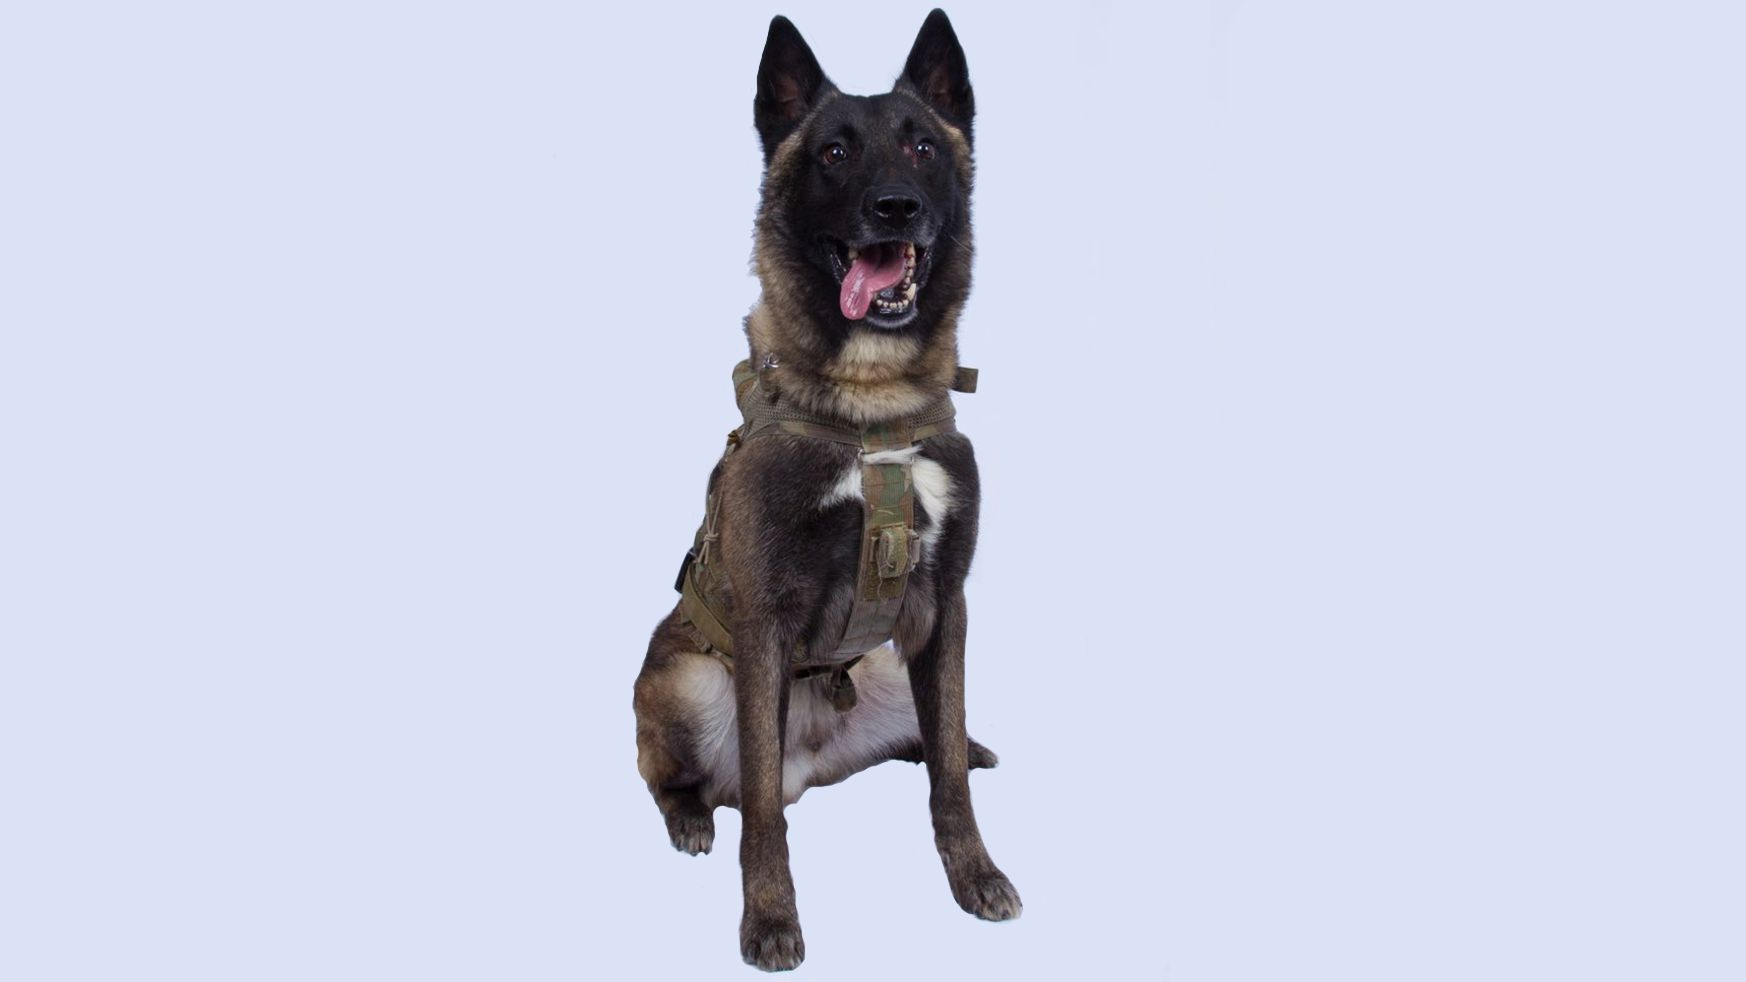 Our Canine Hero who helped capture al-Baghdadi